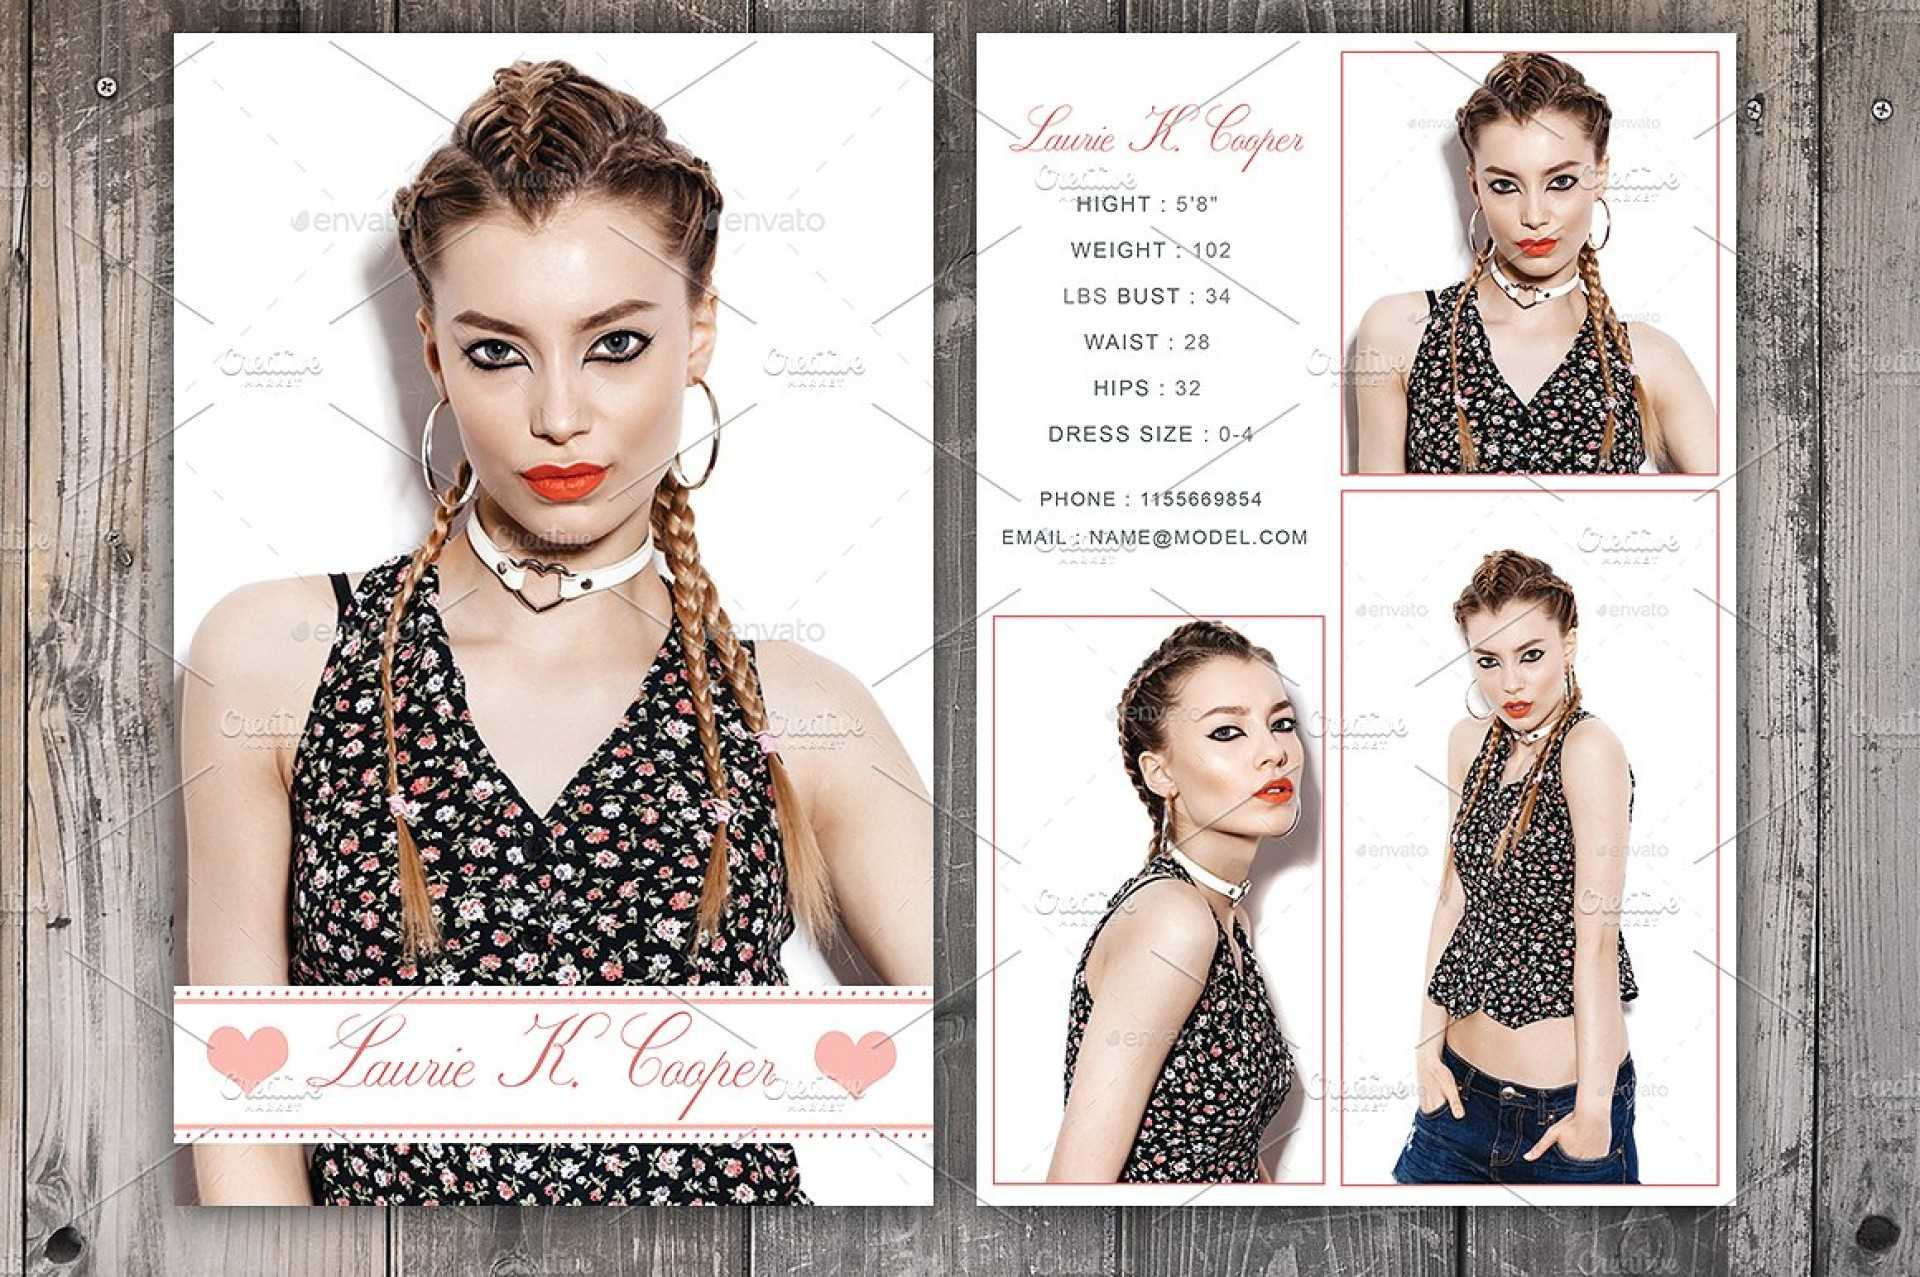 Free Model Comp Card Templates - C Punkt Within Comp Card Template Download